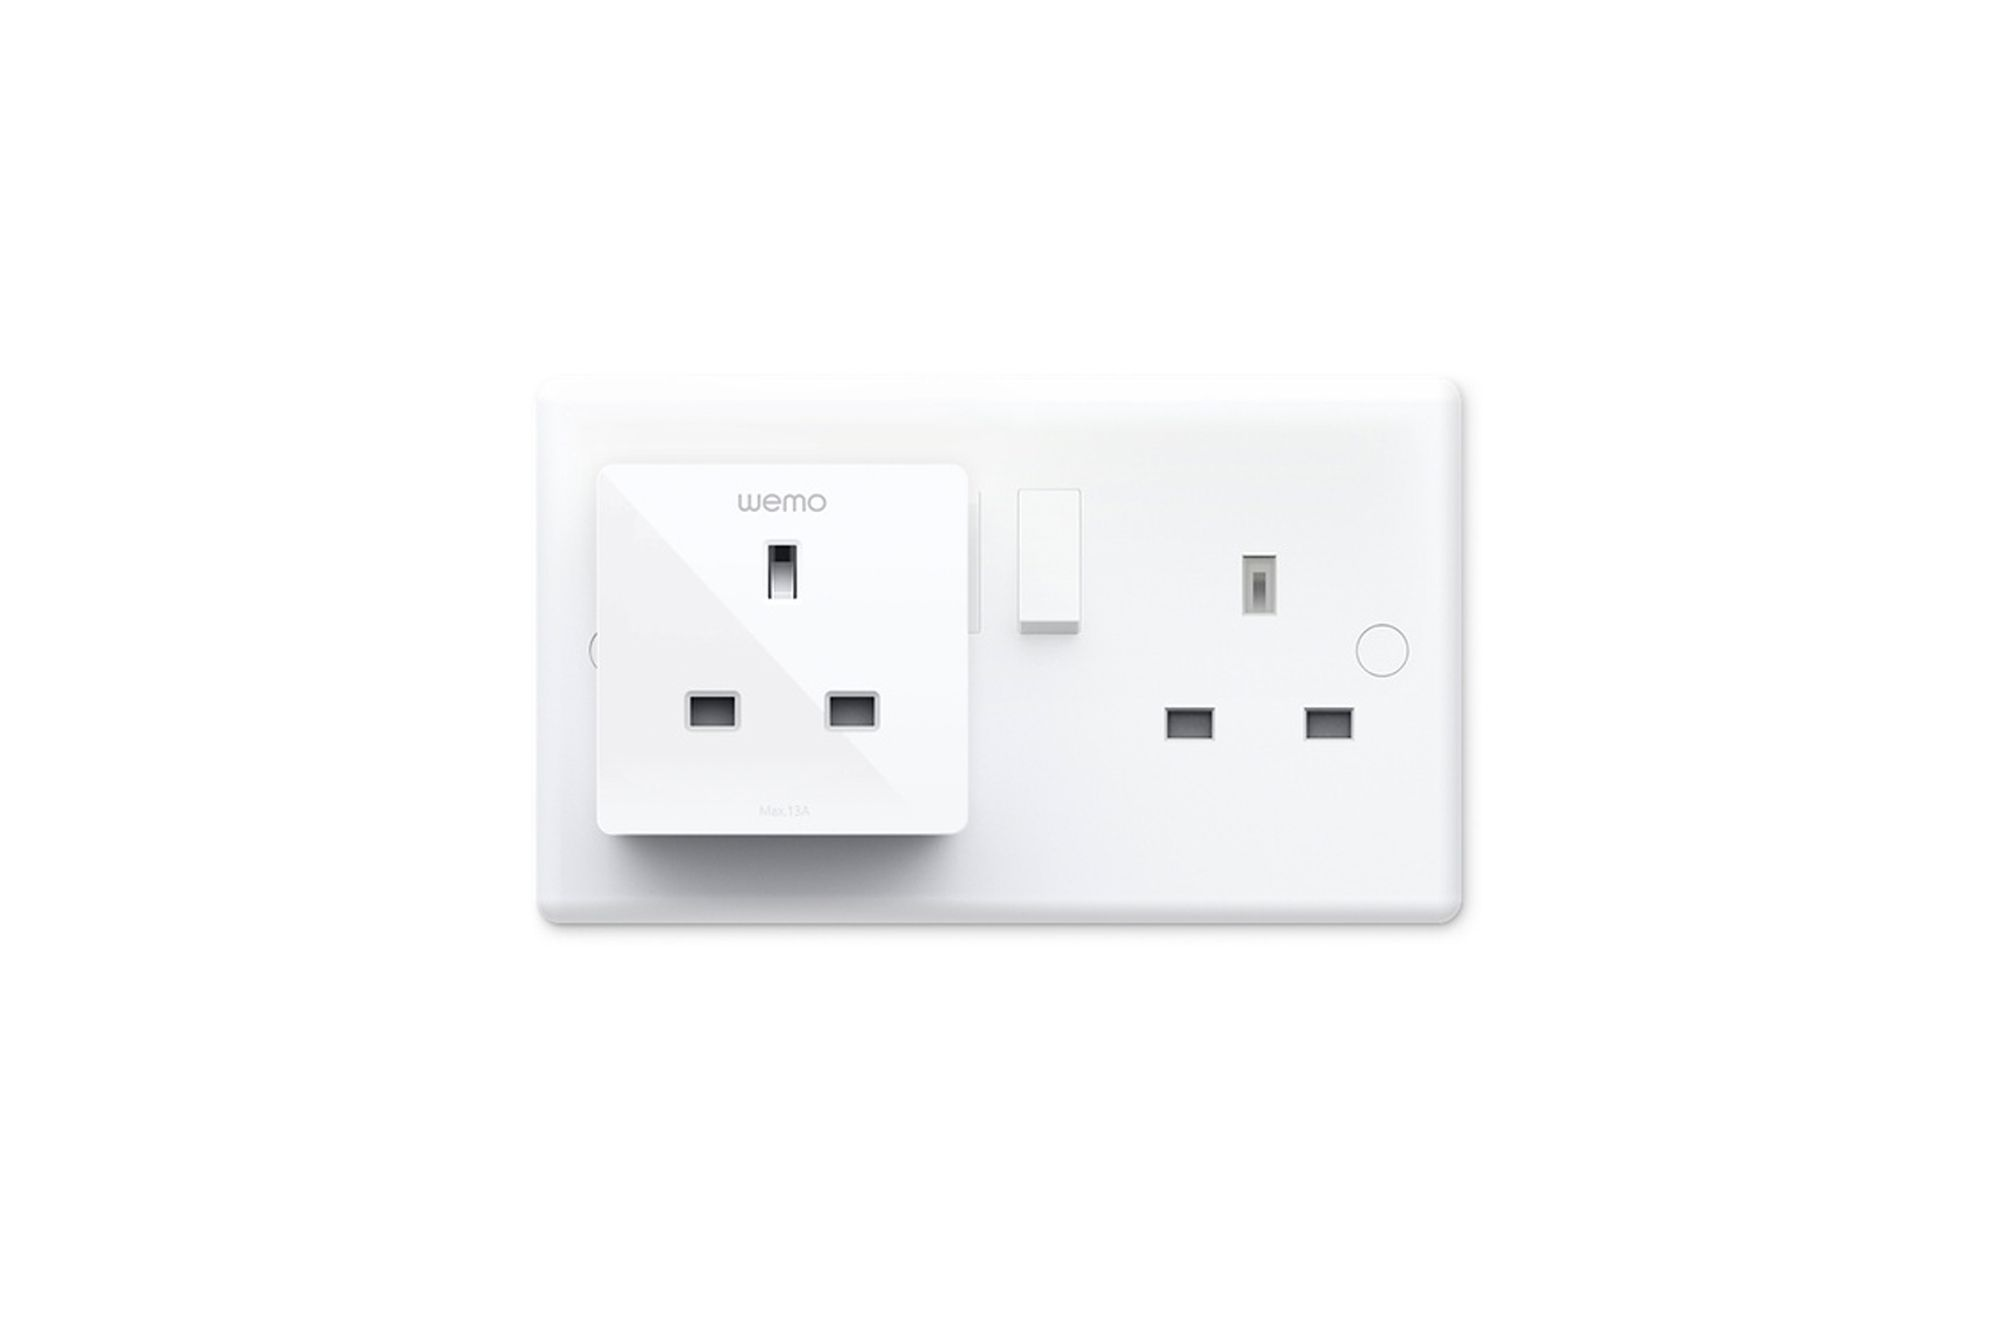 Wemo's mini smart plug conveniently allows you to control your home appliances Image: Courtesy of Apple